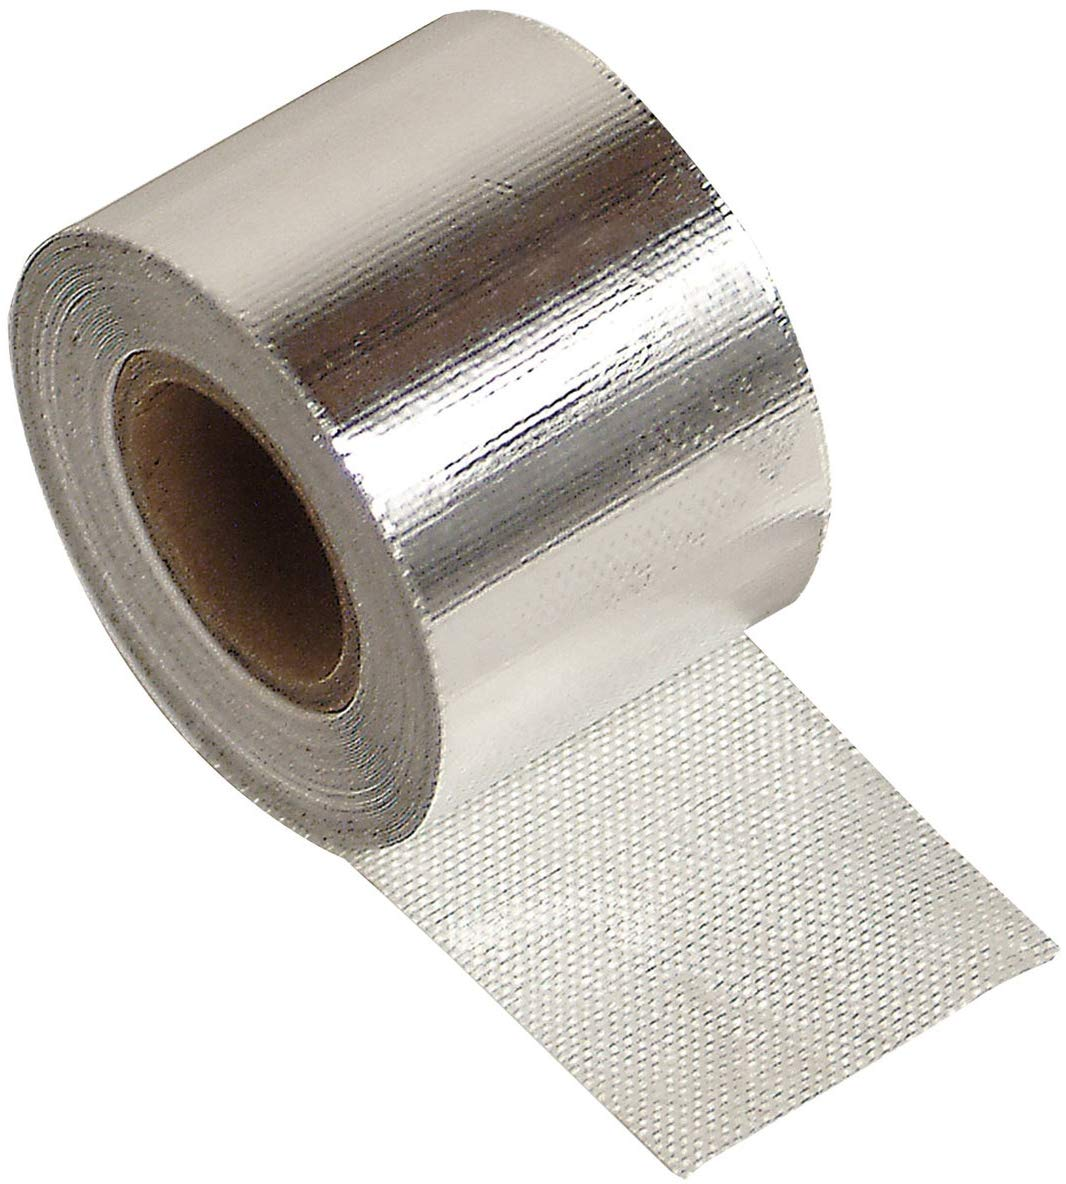 """Design Engineering 010408 Cool-Tape Self-Adhesive Heat Reflective Tape, 1.5"""" x 15' Roll, SILVER"""